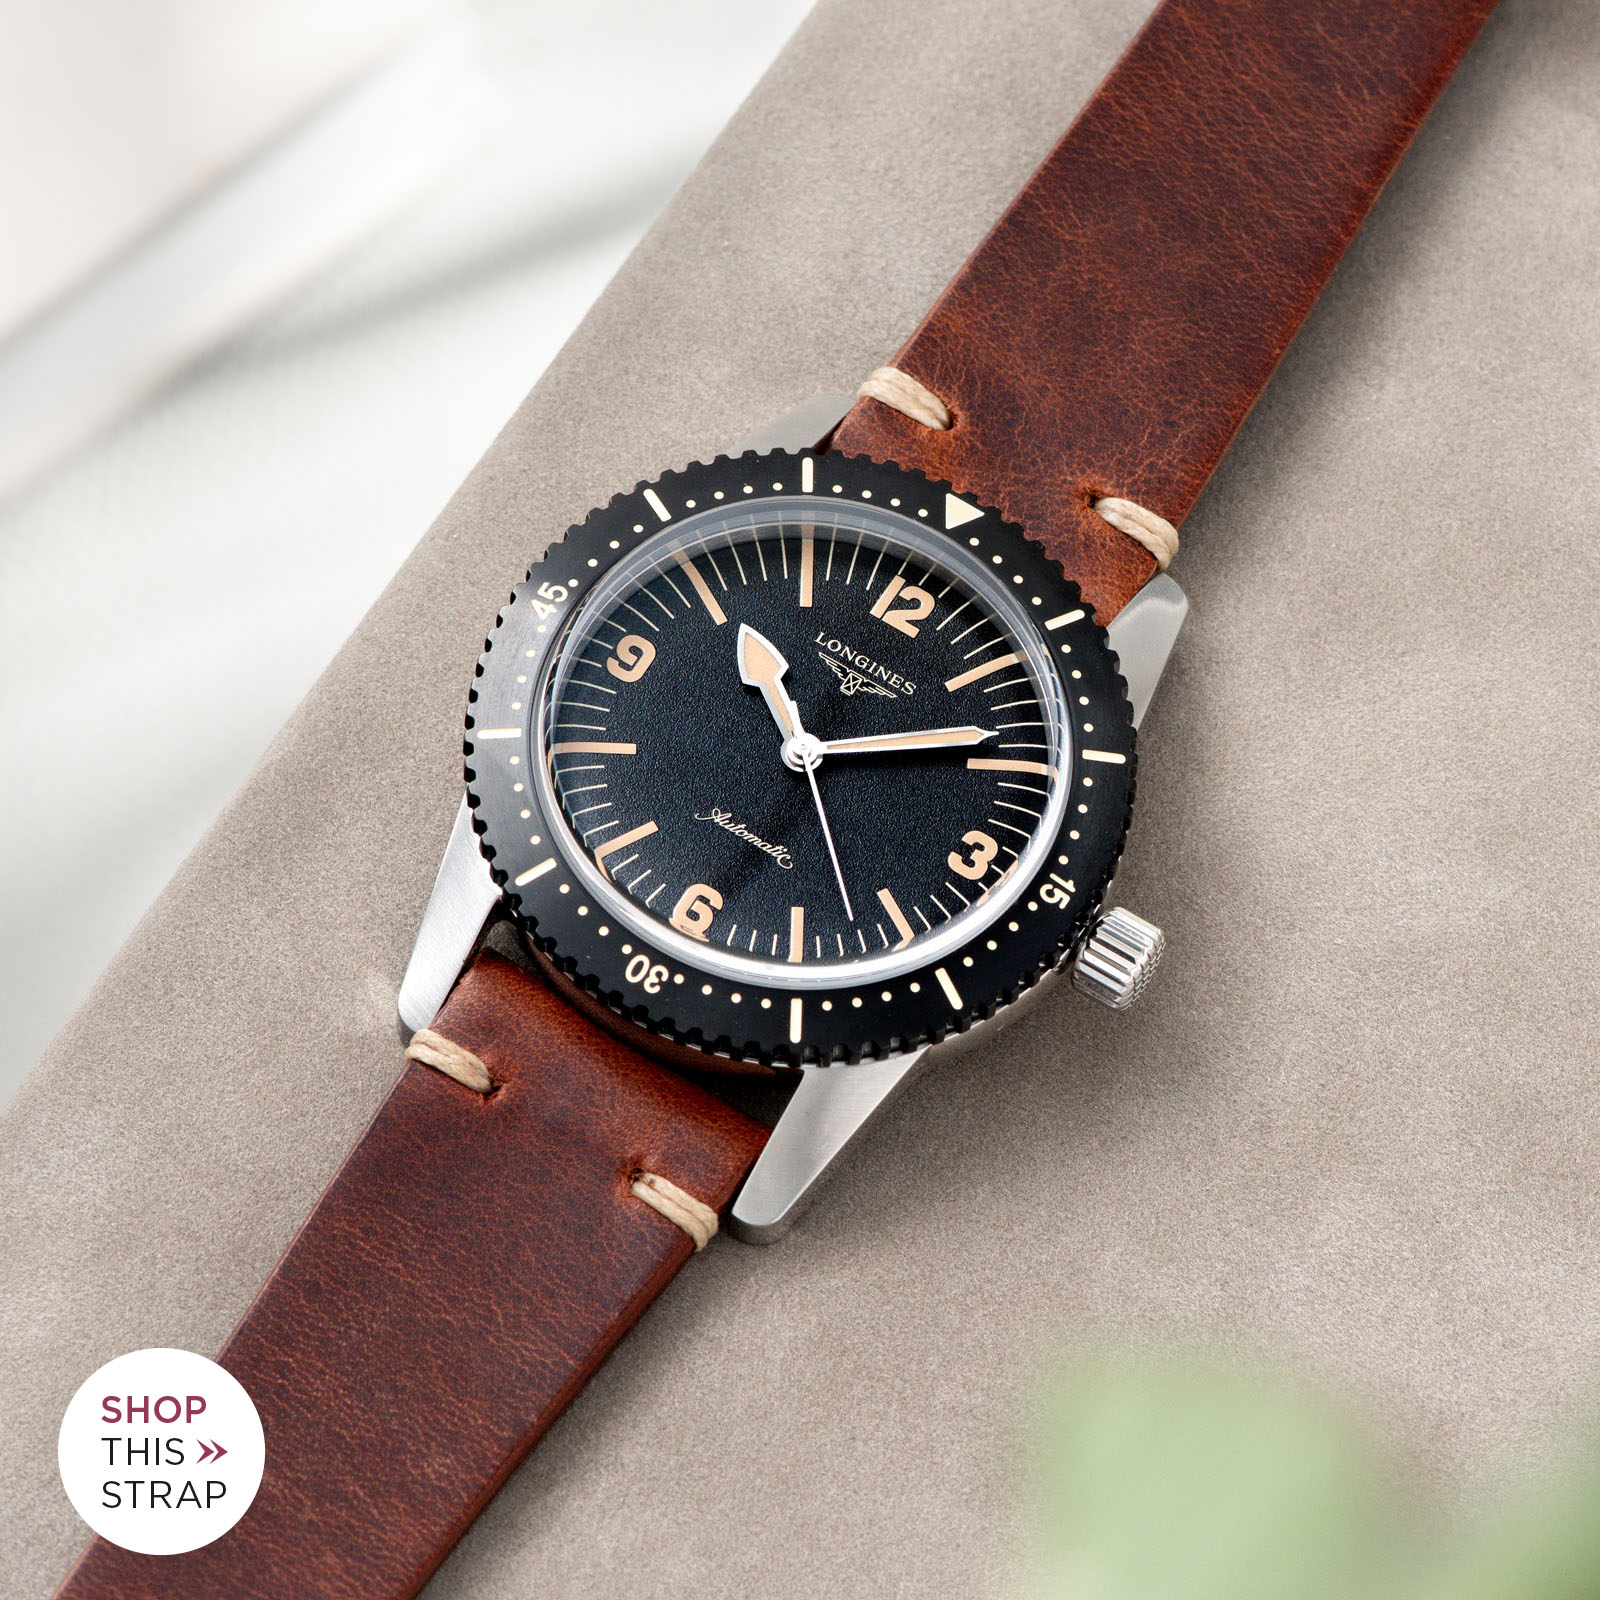 Bulang and Sons_Strap Guide_Longines Skin Diver_Siena Brown Leather Watch Strap